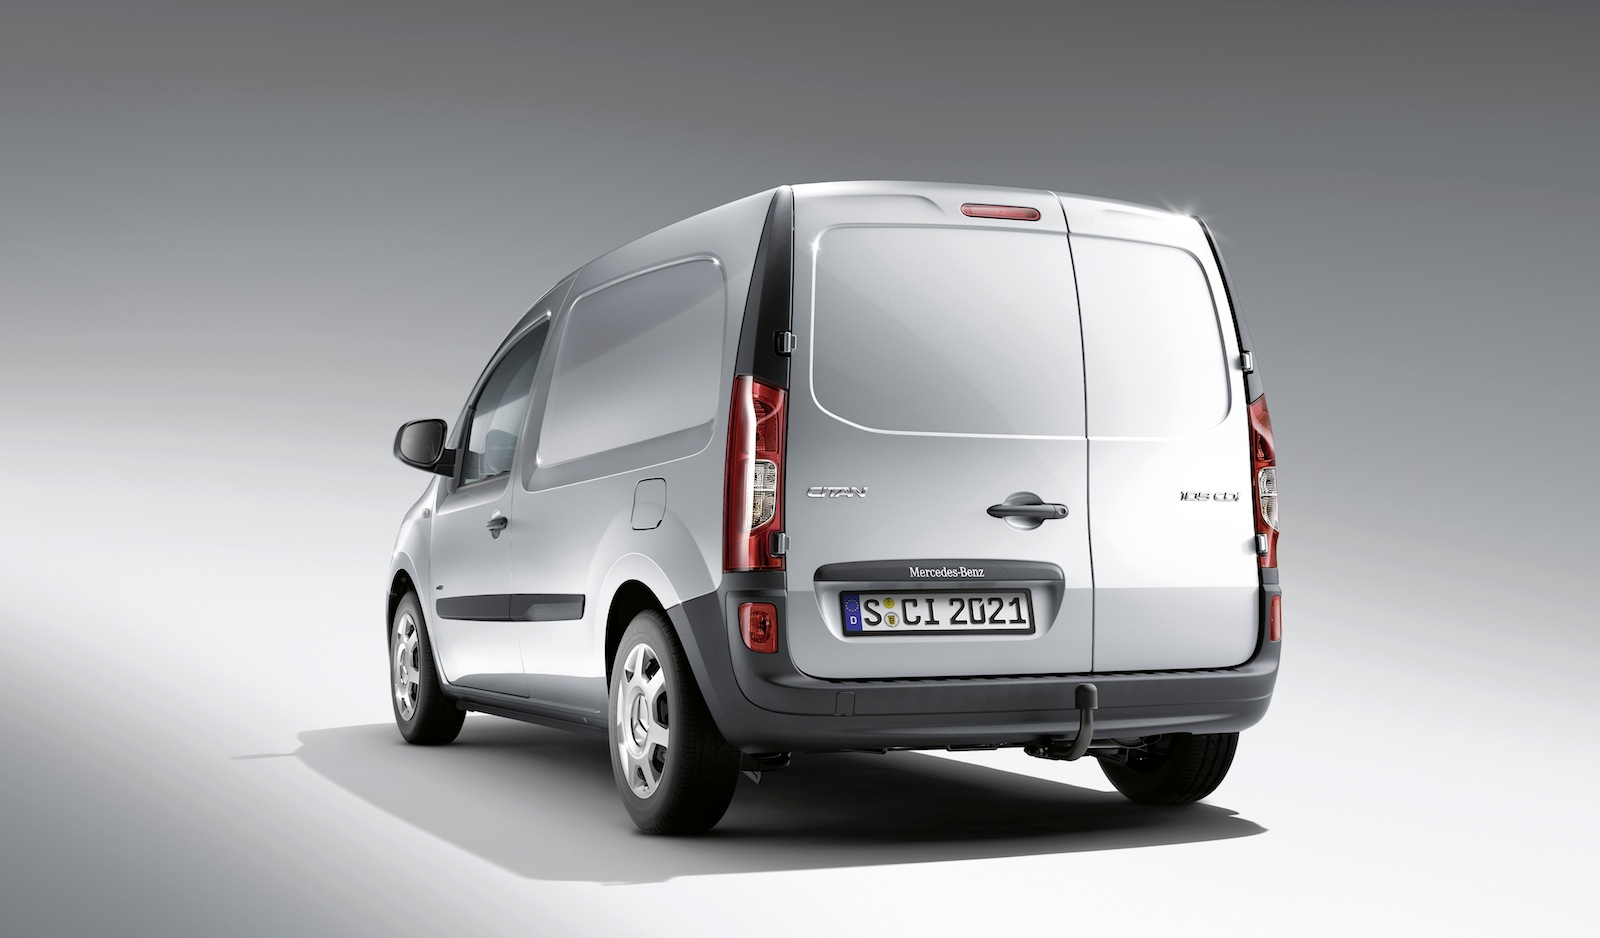 mercedes benz citan city delivery van revealed photos caradvice. Black Bedroom Furniture Sets. Home Design Ideas